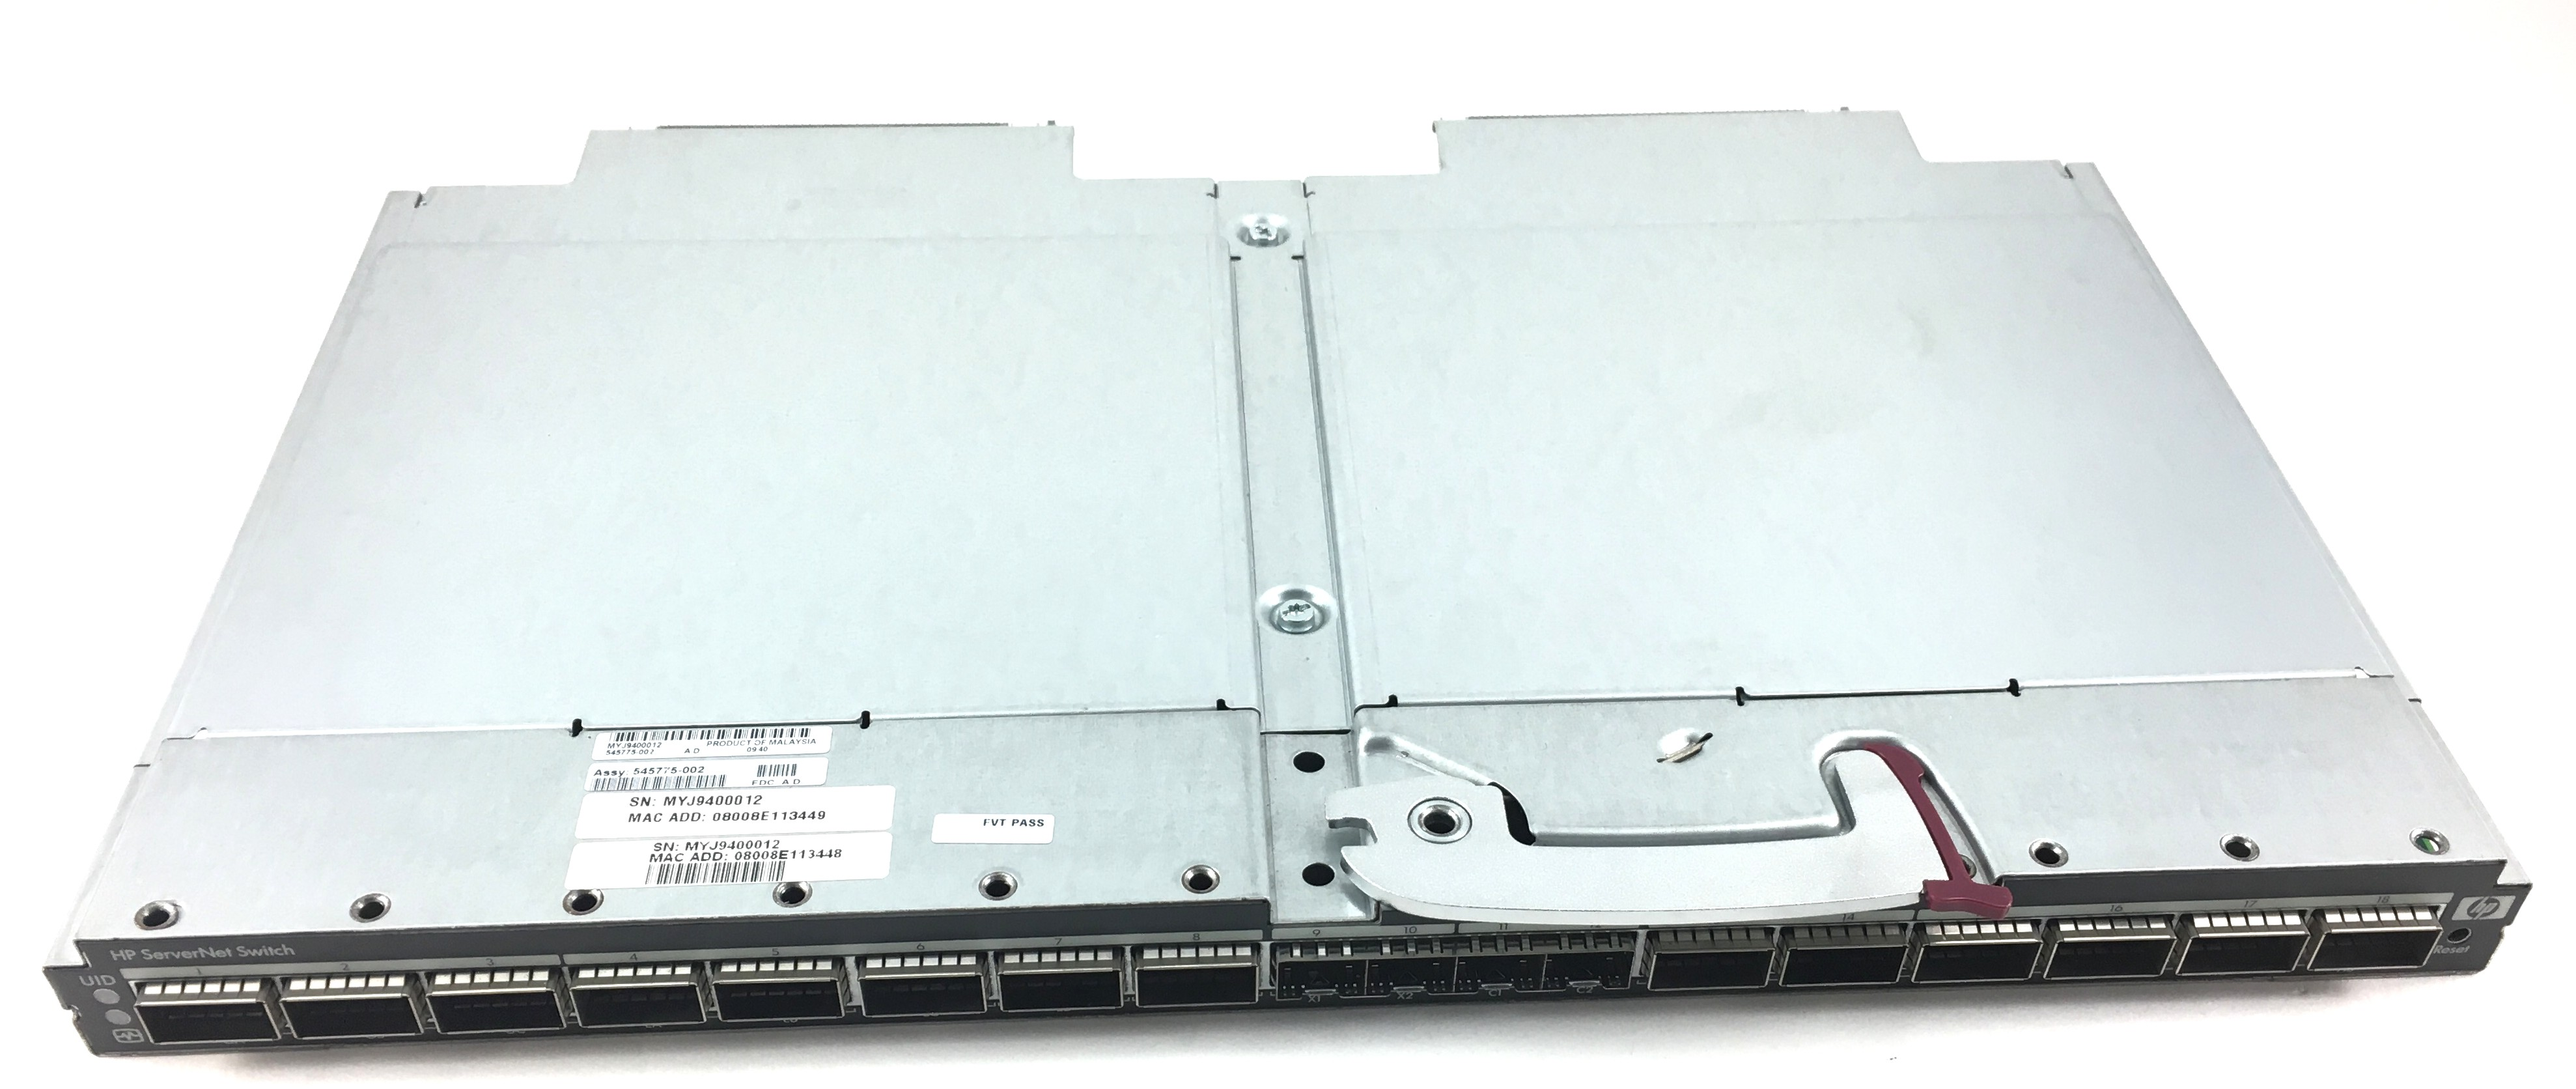 HP BLC C-Class Servernet Inifiniband Module Switch (545775-002)